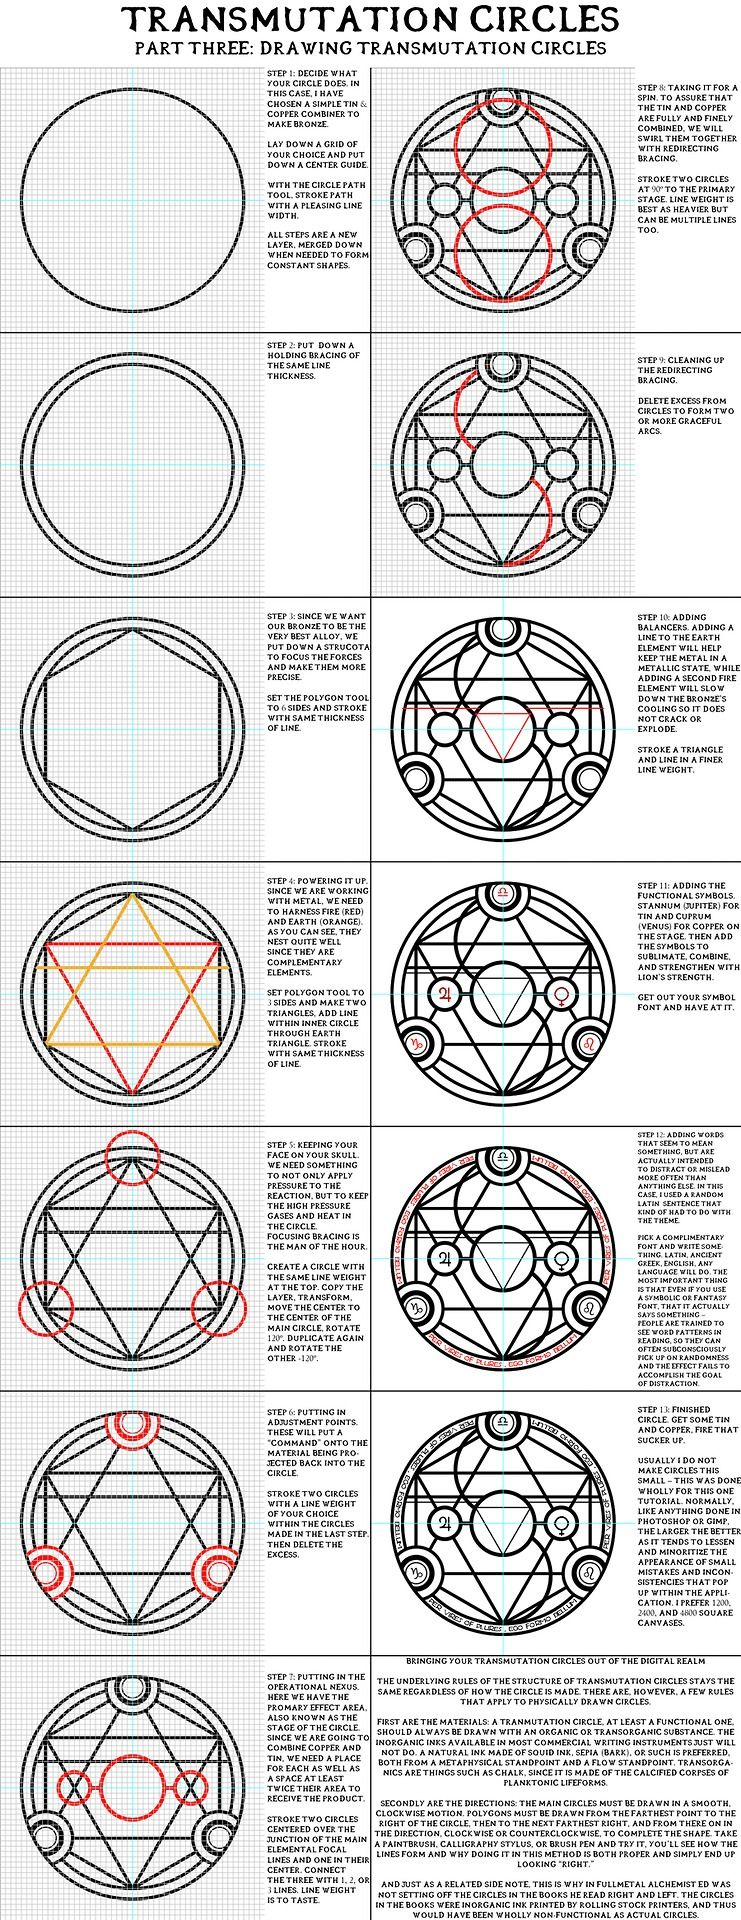 Transmutation Circles Fullmetal Alchemist Just Pinning This Cus You Know Reasons Might Come In Handy